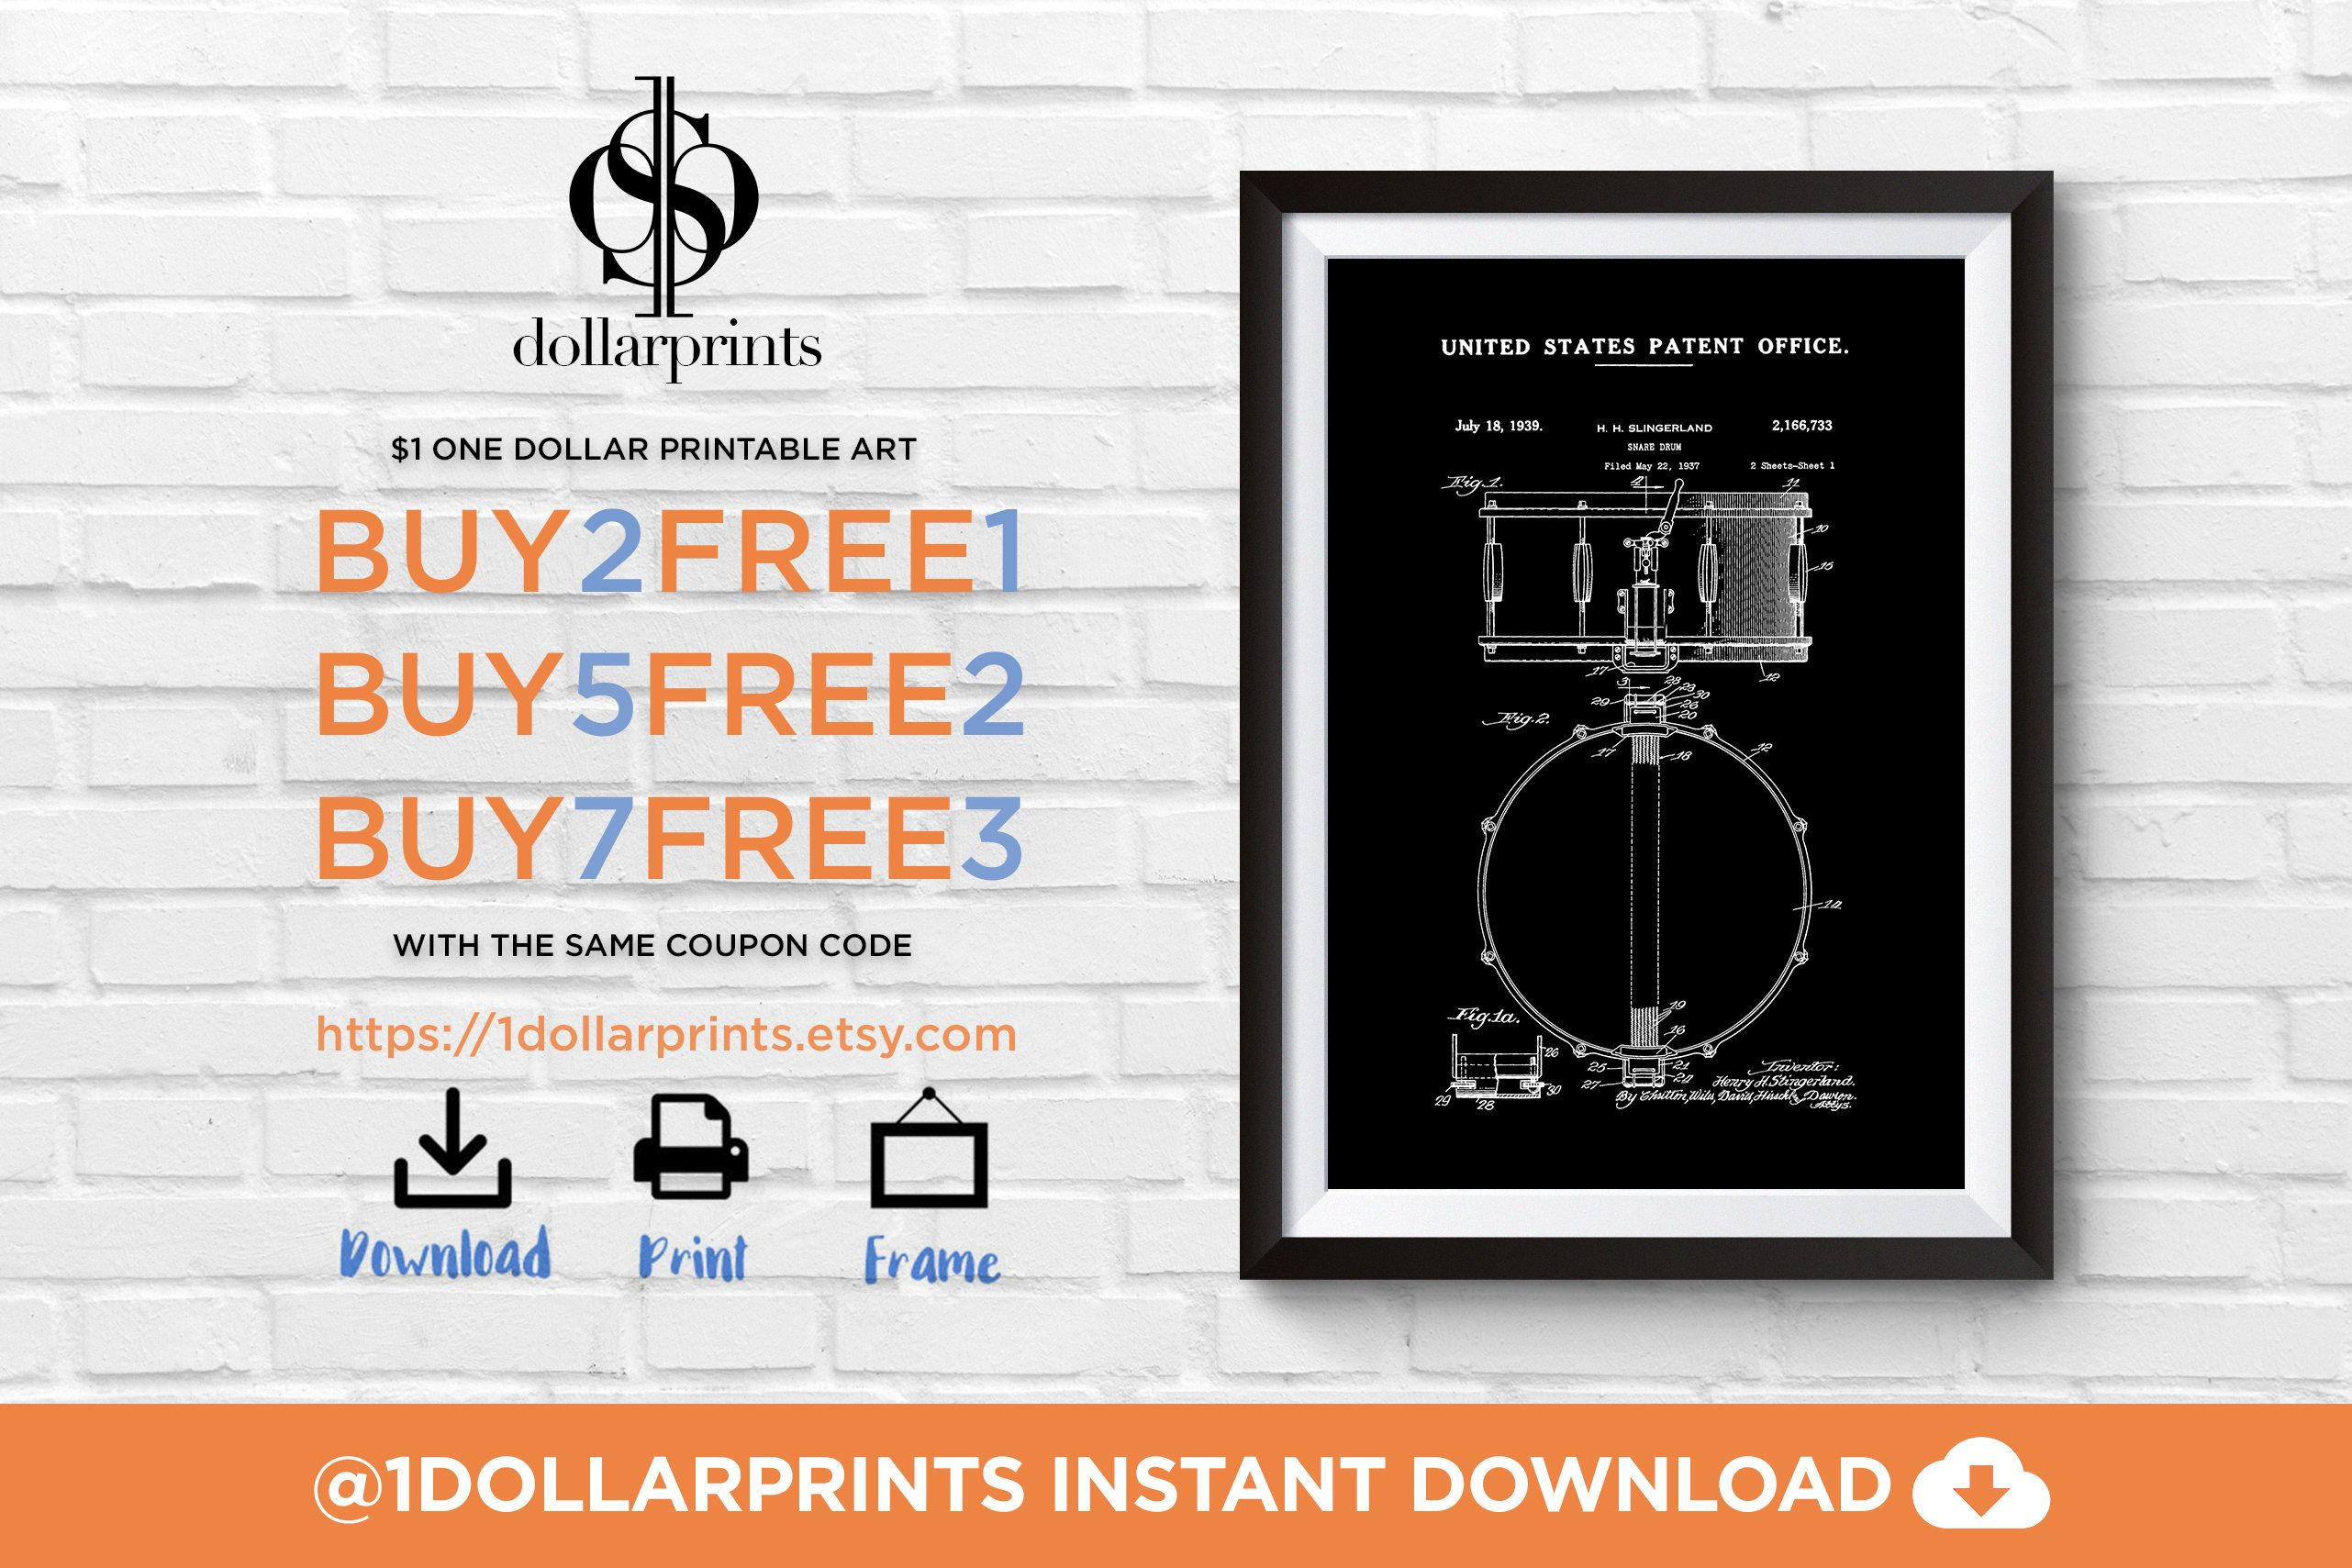 Download once print for life drummer gifts drum poster patent drummer gifts drum poster patent music gift printable art blueprint drummer art snare drum drum patent music room decor malvernweather Images